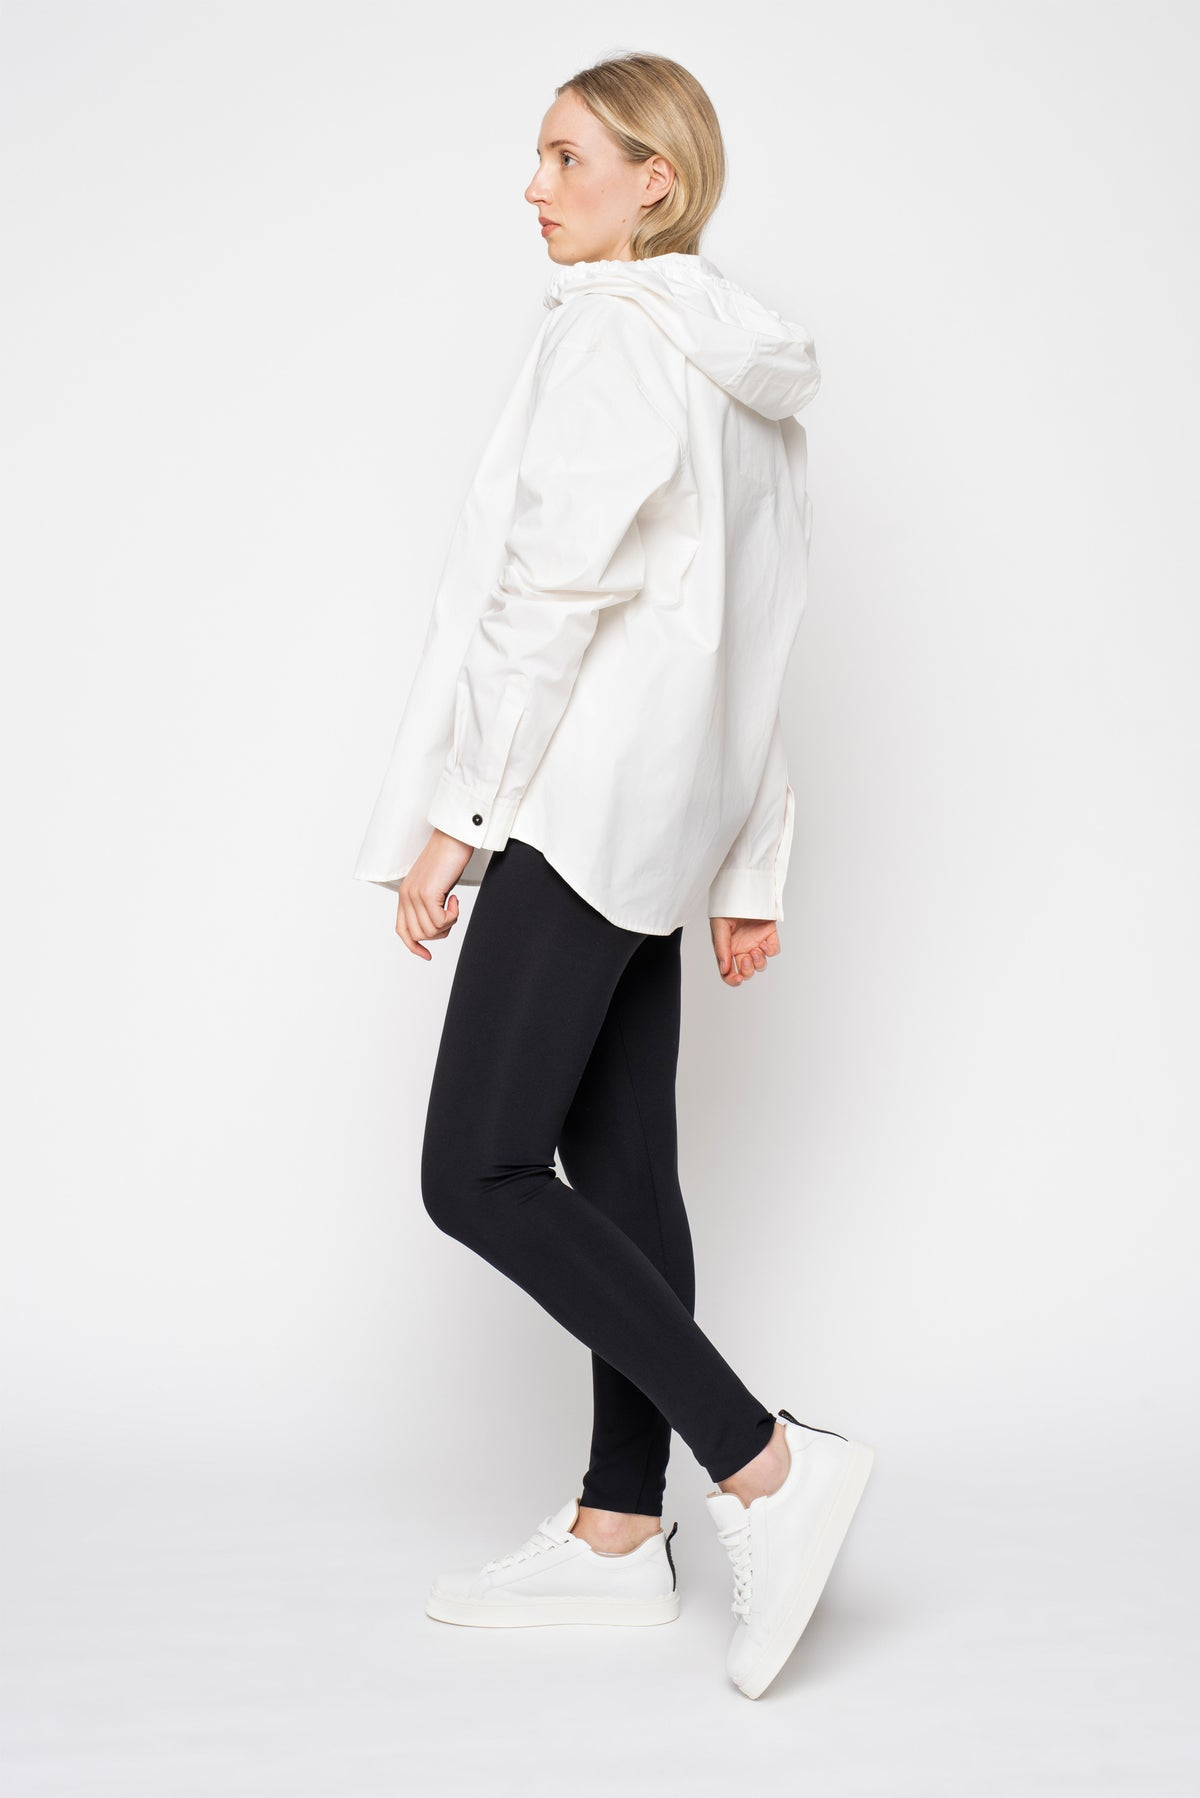 Jil Sander White Cotton Shirt with Hood